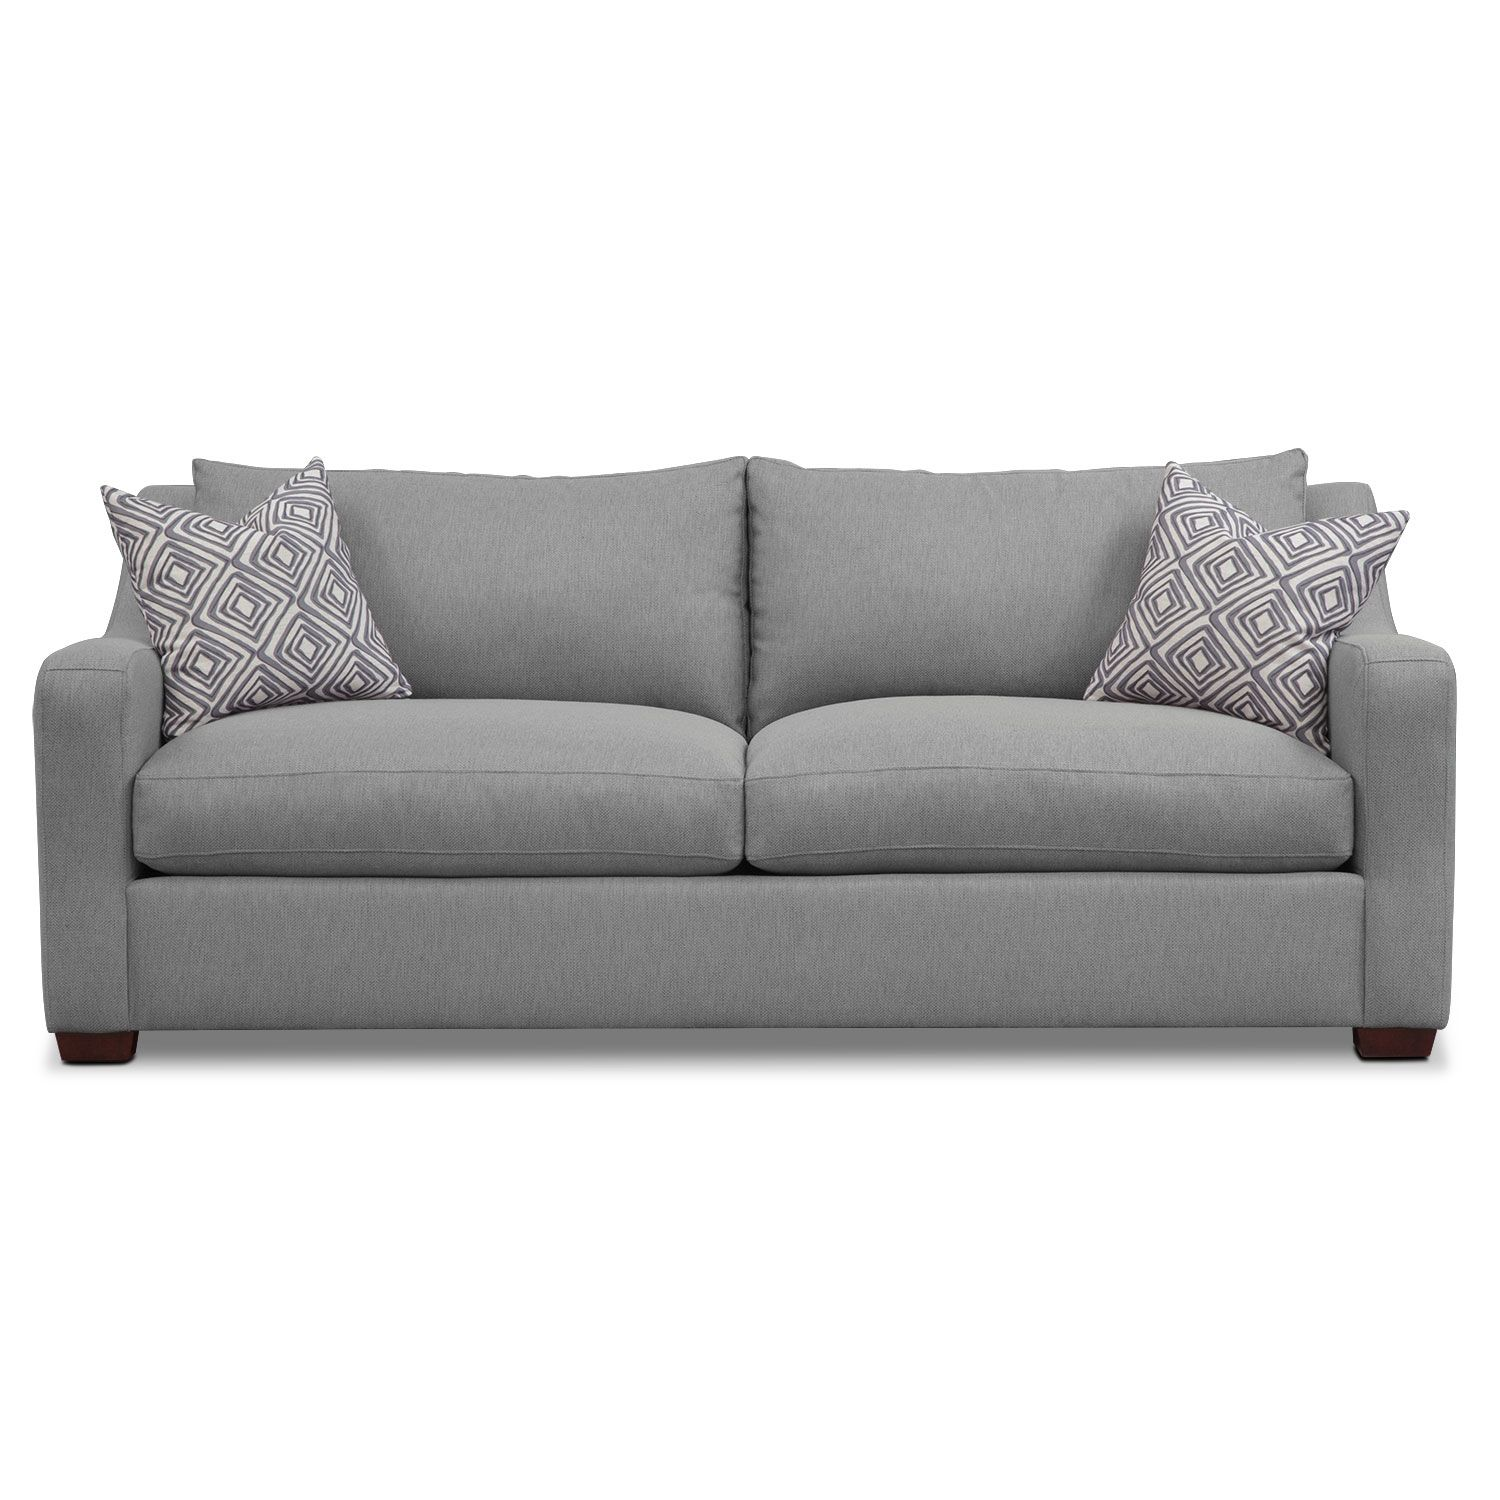 American Signature Furniture Com: Graceful Gray. Versatile Gray Color And Classic Design